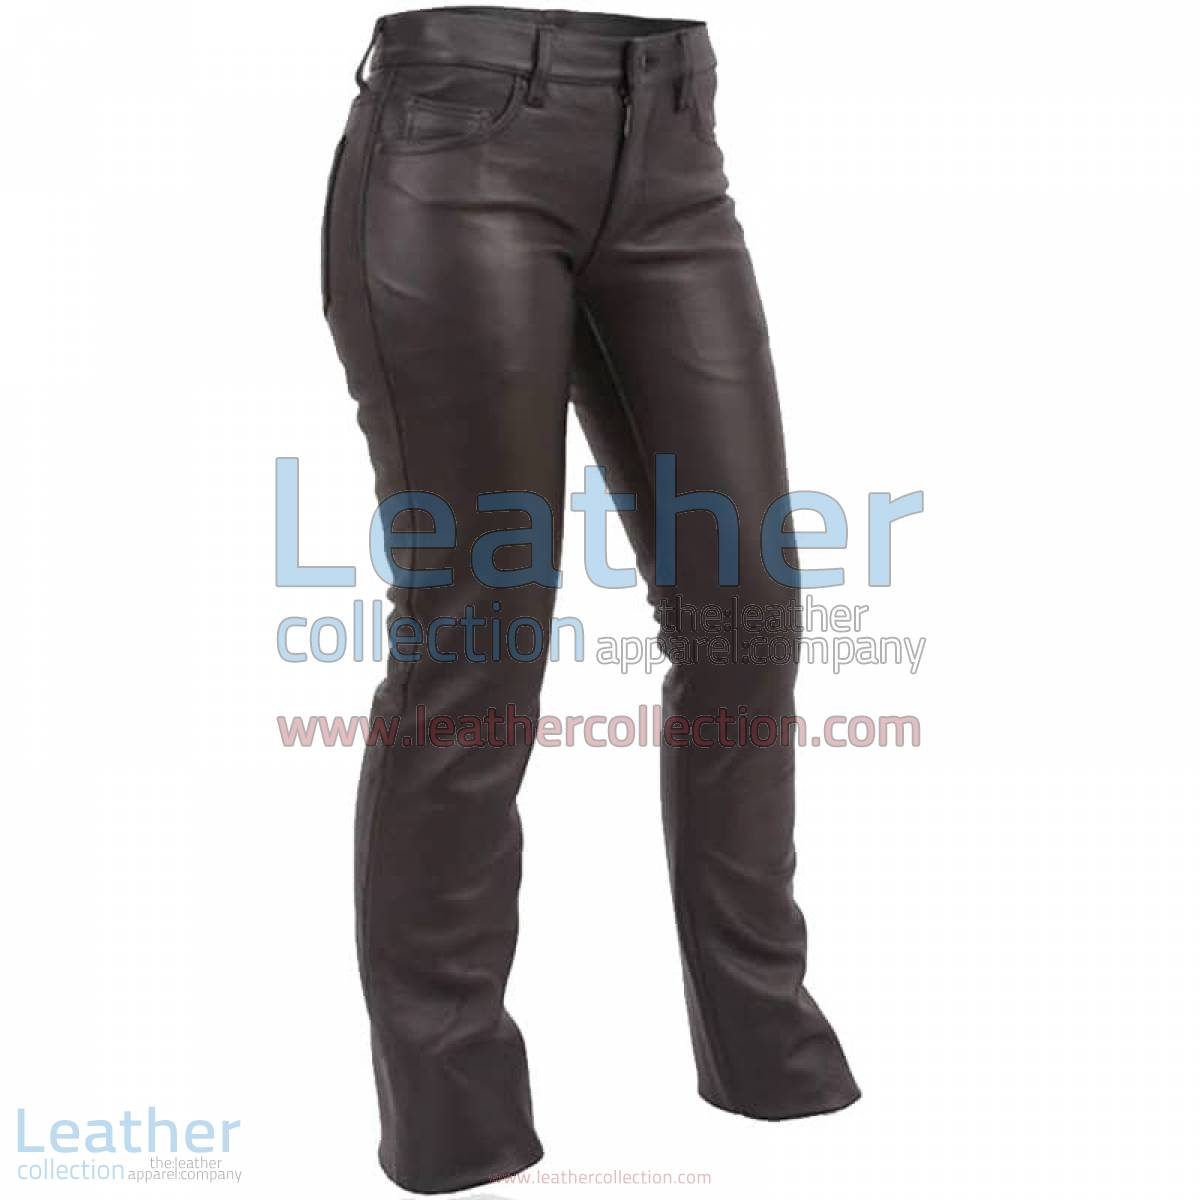 Jeans Style Low Rise Leather Pants | low rise leather pants